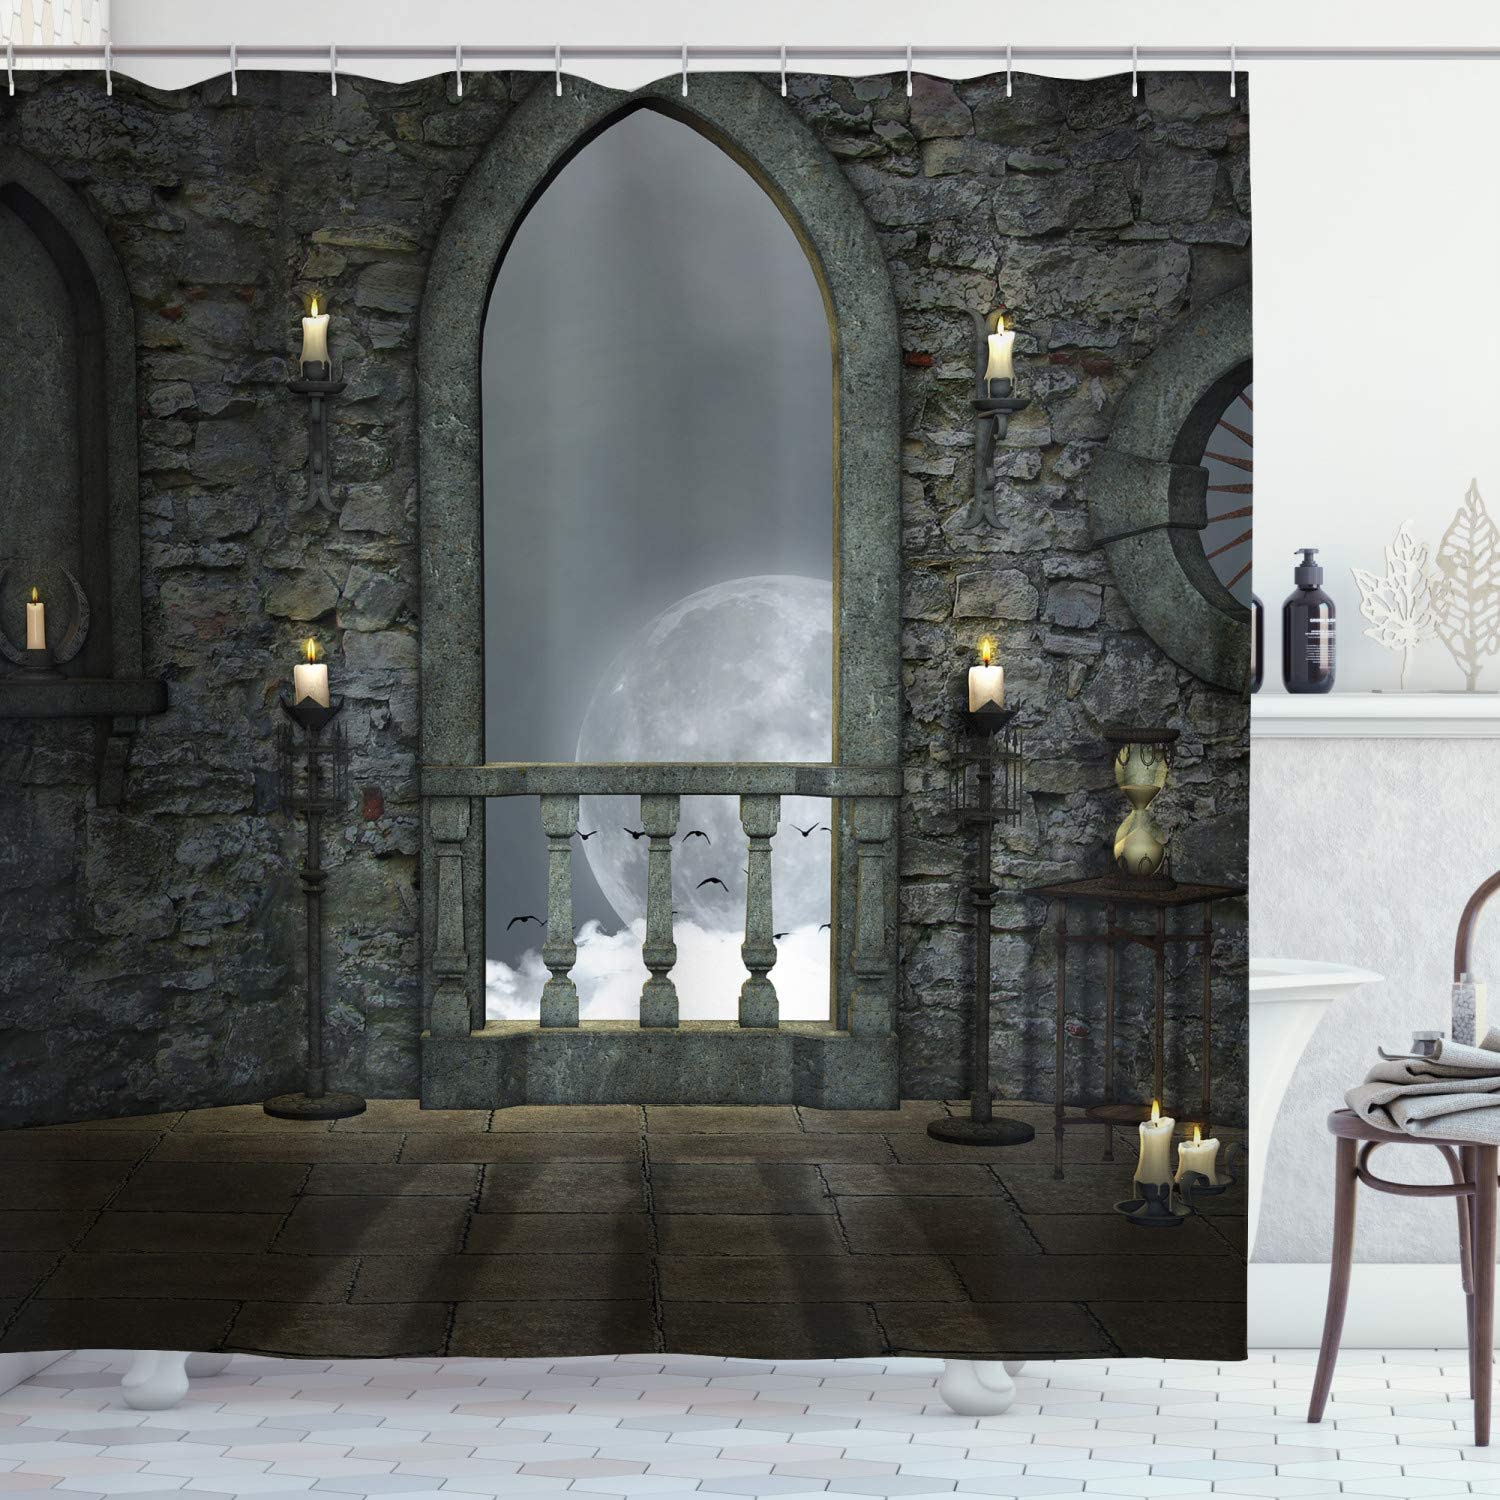 Ambesonne Gothic Shower Curtain, Full Moon Birds Fairytale Fantasy Old Castle Balcony Burning Candle Night View Art, Cloth Fabric Bathroom Decor Set with Hooks, 70